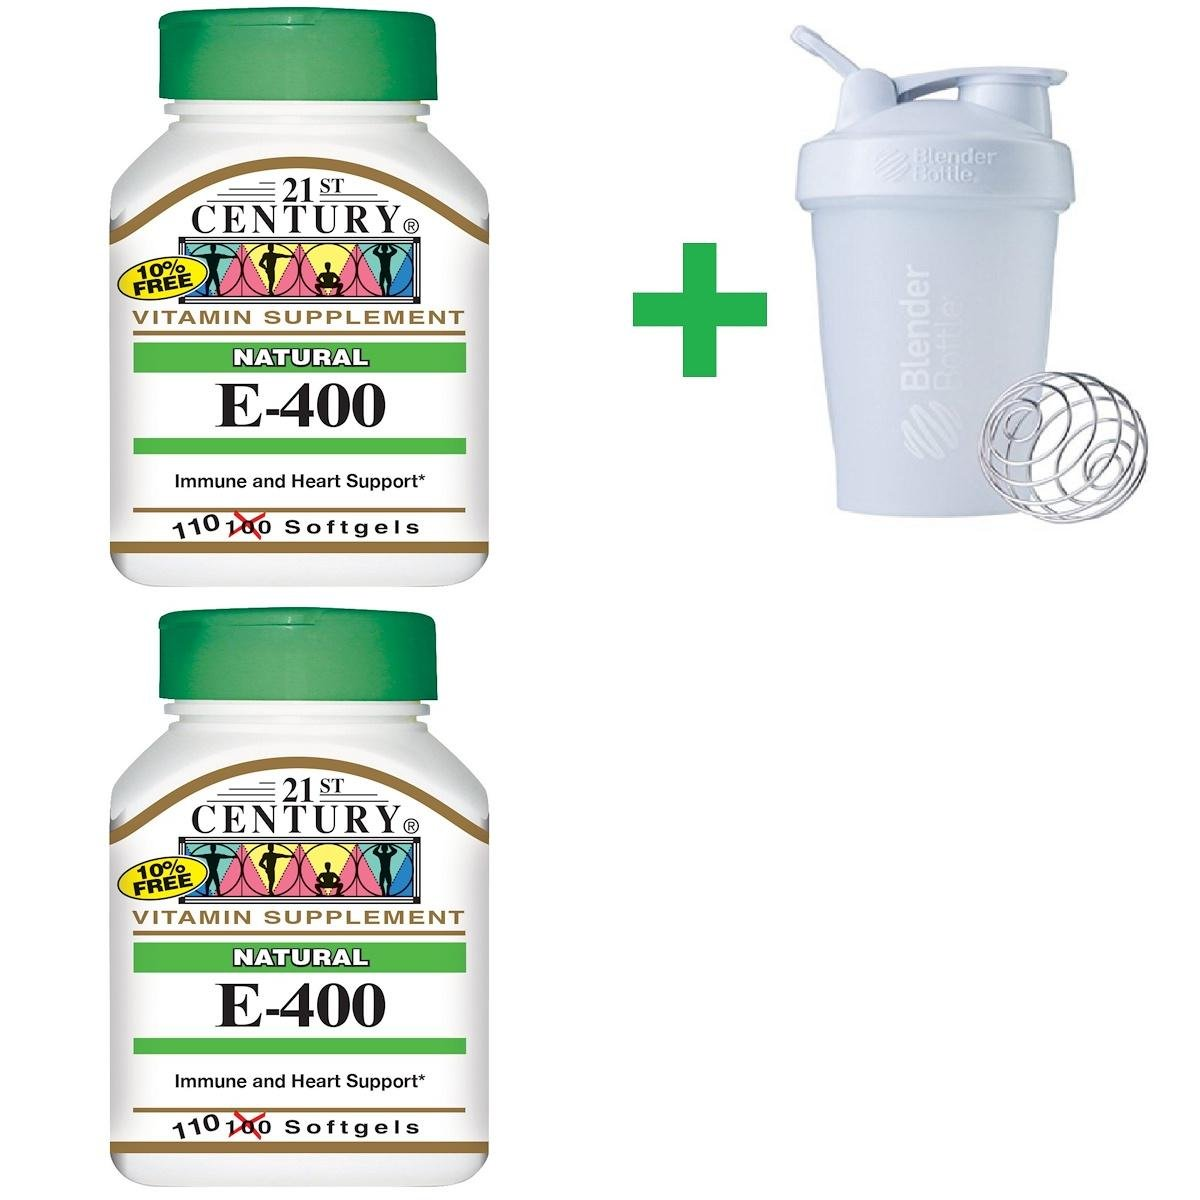 21st Century, E-400, Natural, 110 Softgels (2 Packs) + Assorted Sundesa, BlenderBottle, Classic With Loop, 20 oz